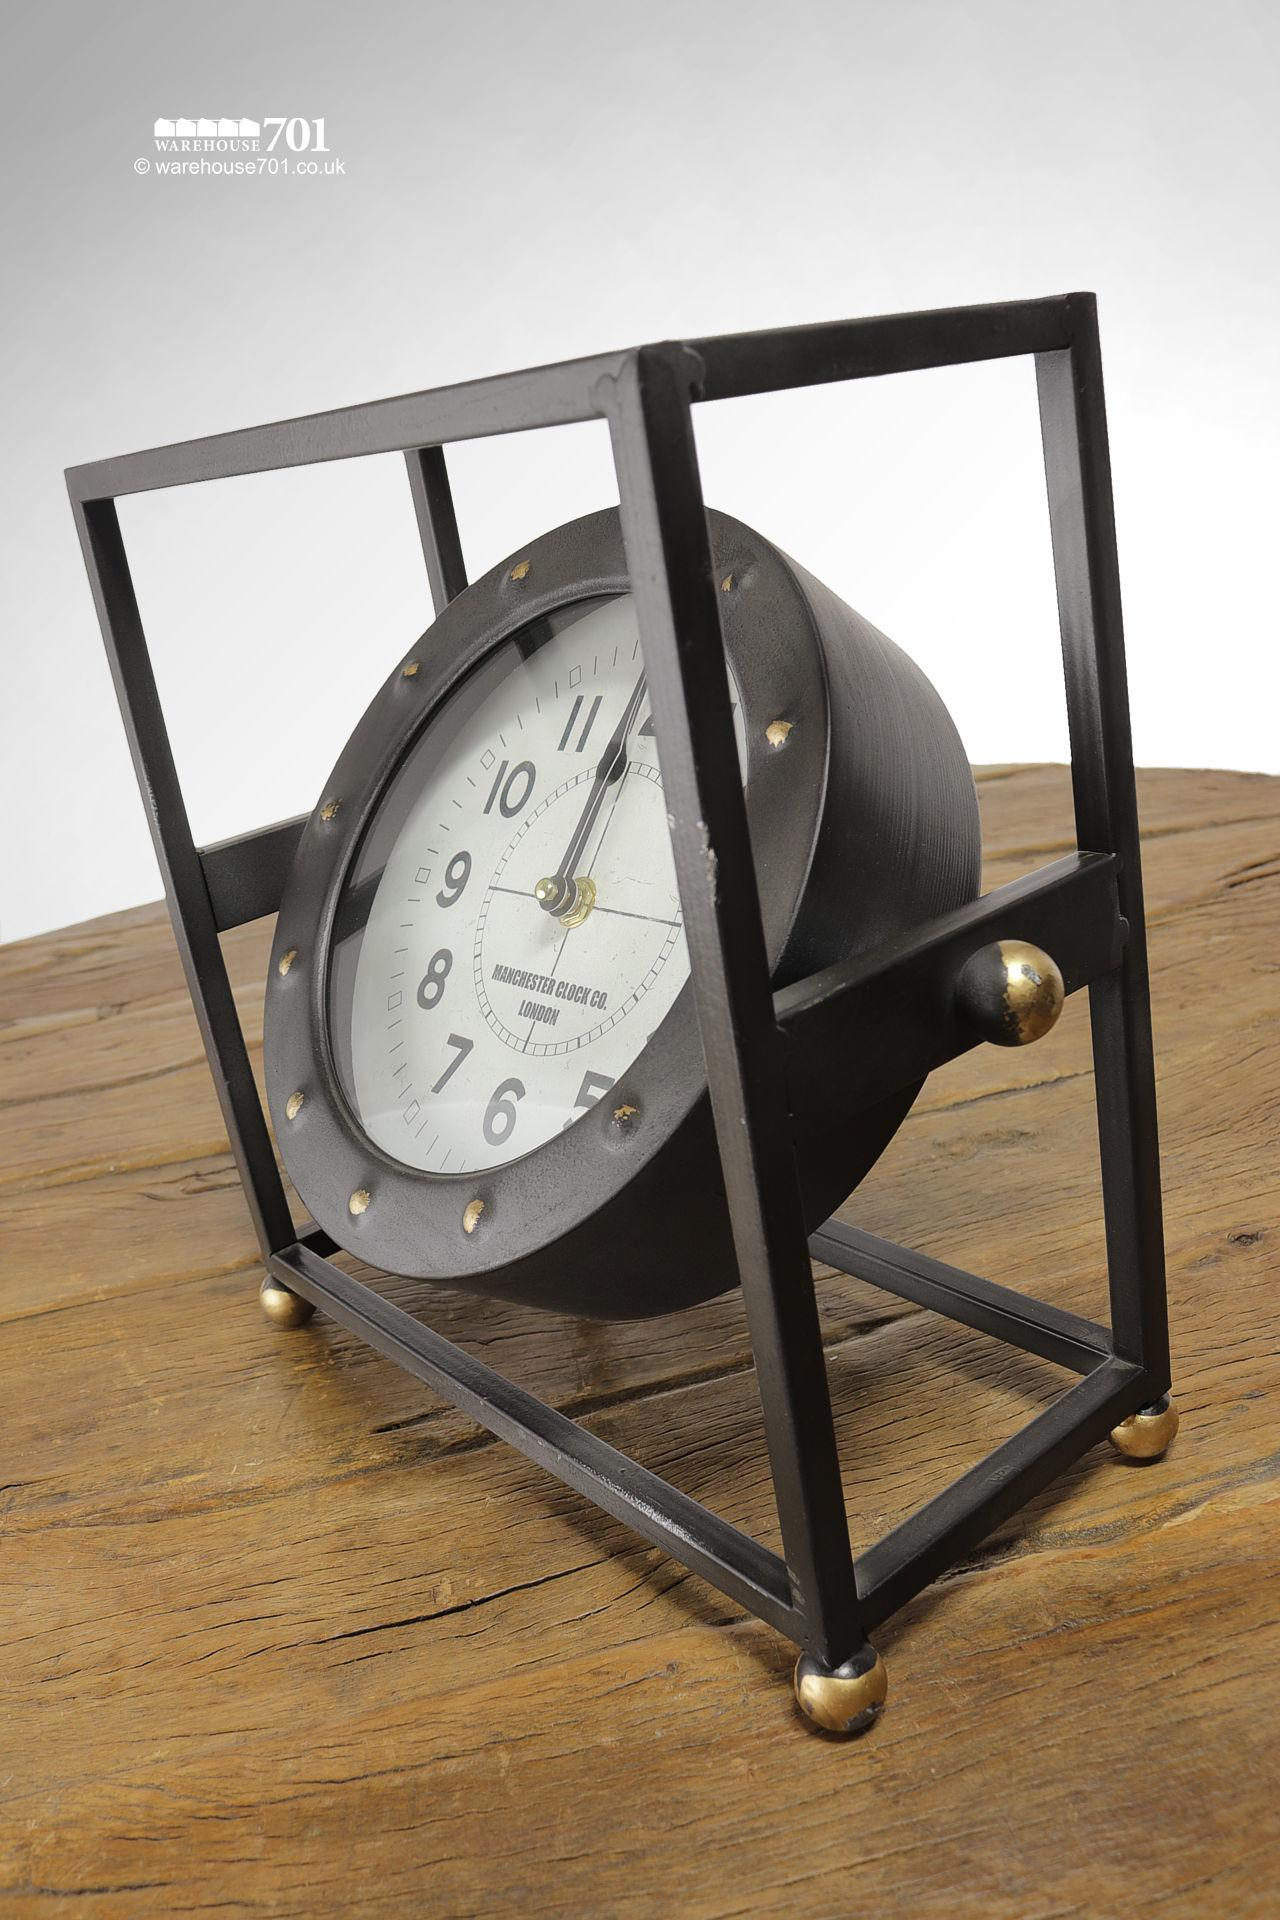 New Pivoting Framed or Cradled Industrial Style Freestanding Clock